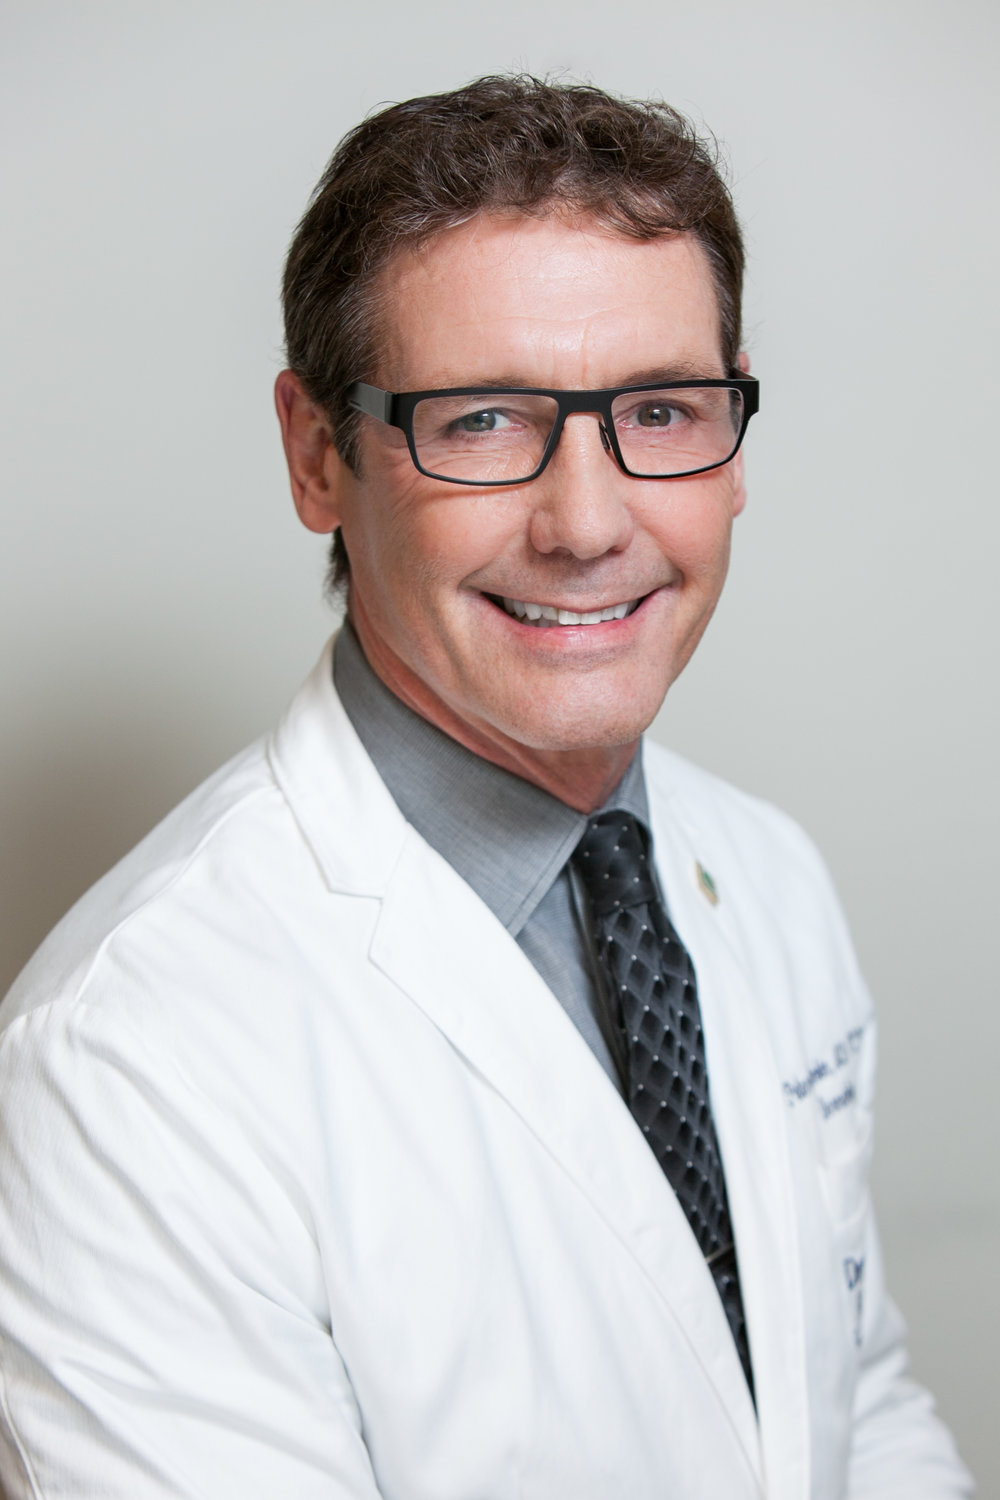 Dr. Peter Jenkin - Dermatology Associates of Seattle, WA